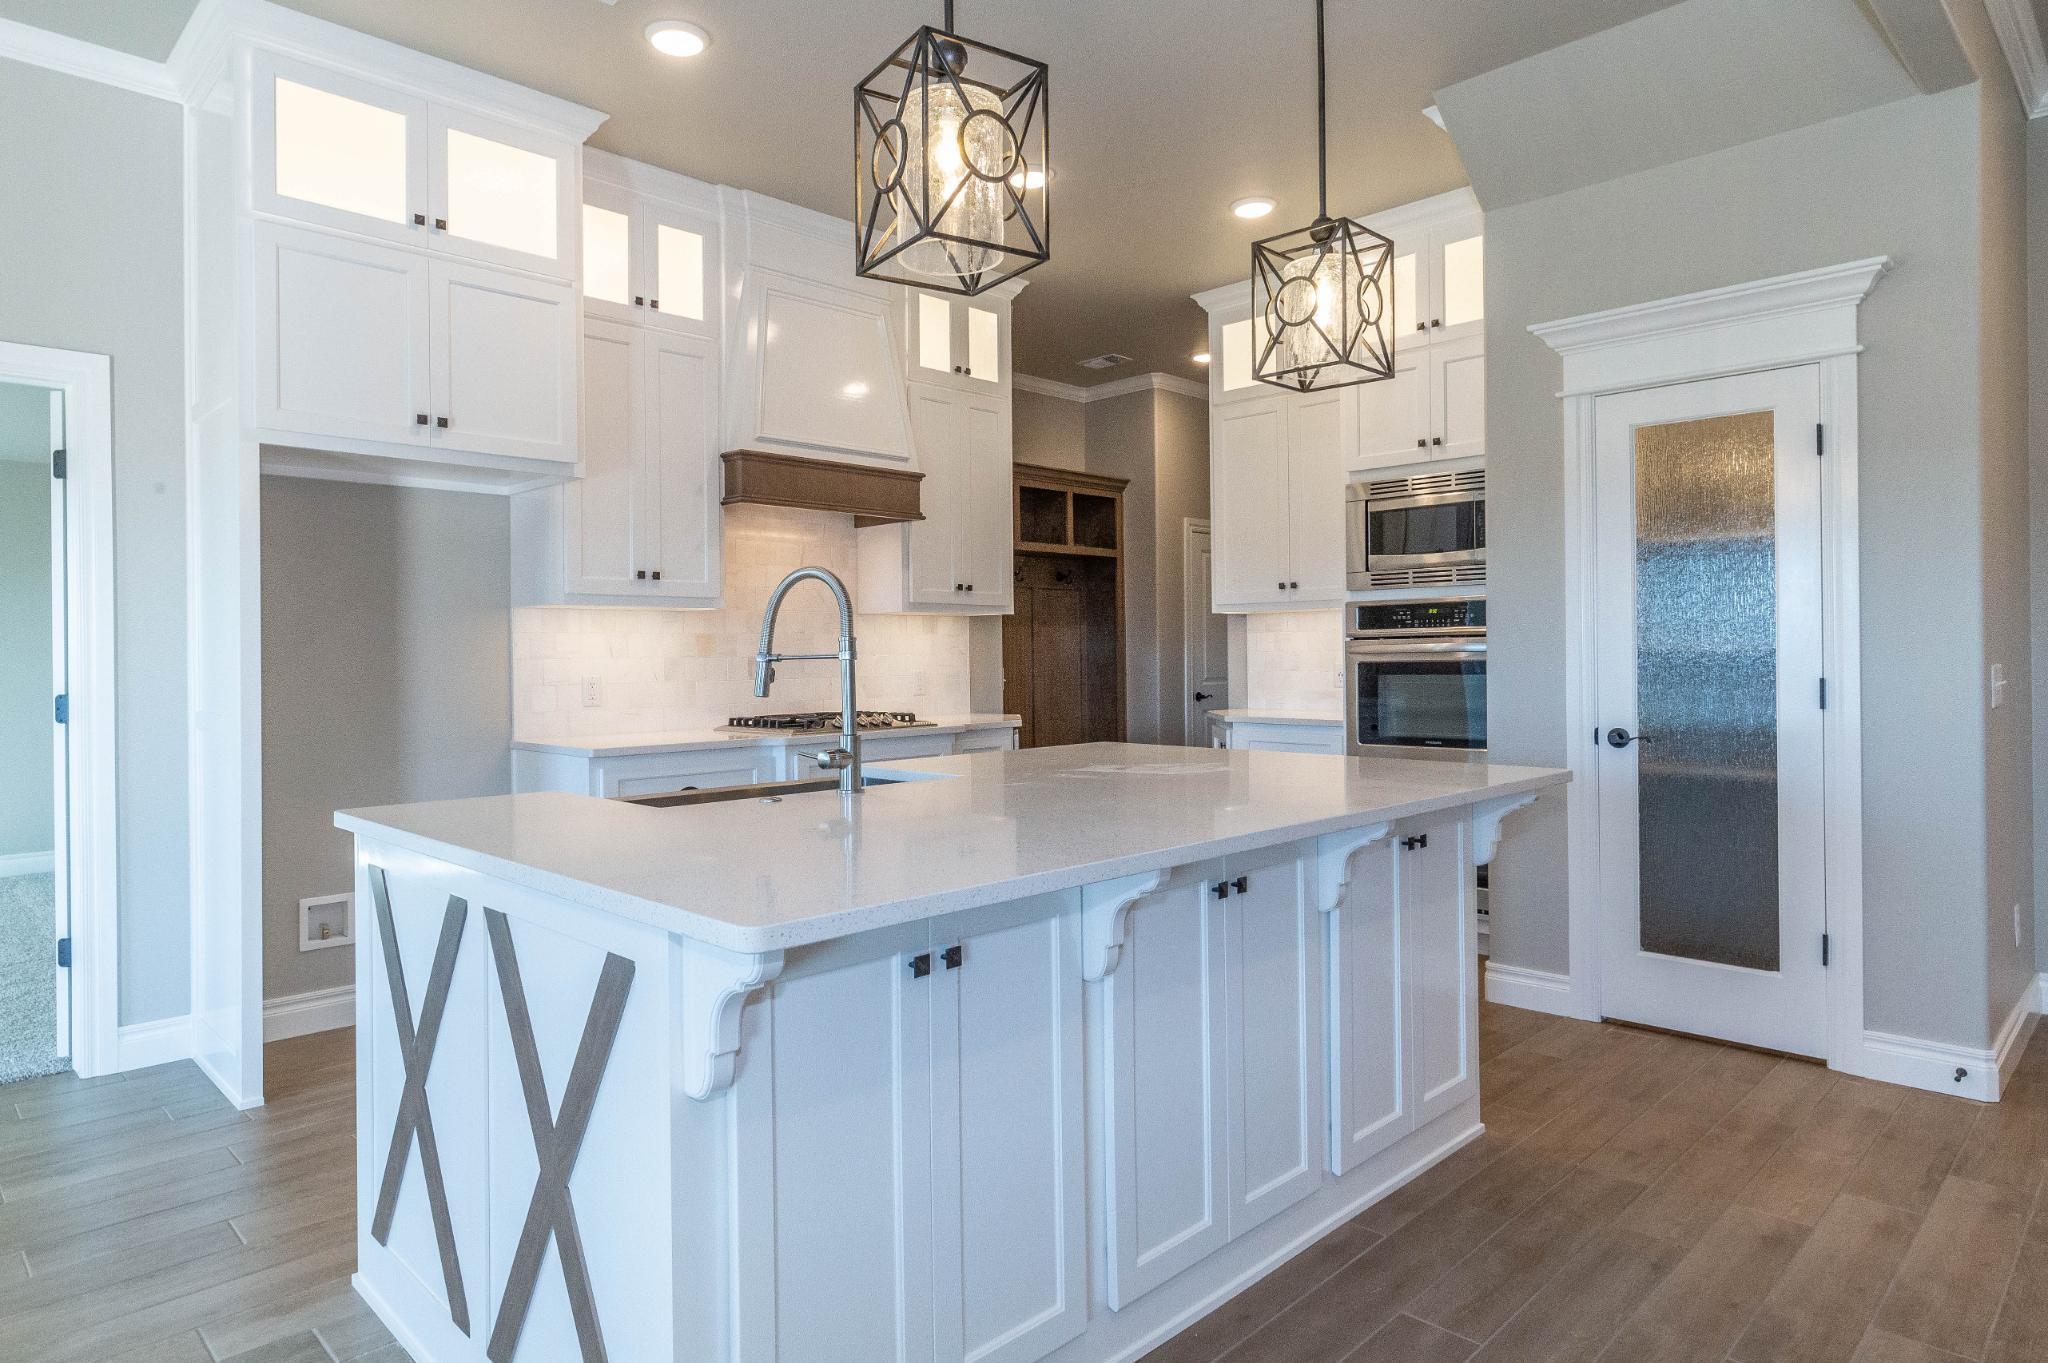 Kitchen featured in the Cornerstone Bonus Room - 5 Bedroom By Homes By Taber in Oklahoma City, OK